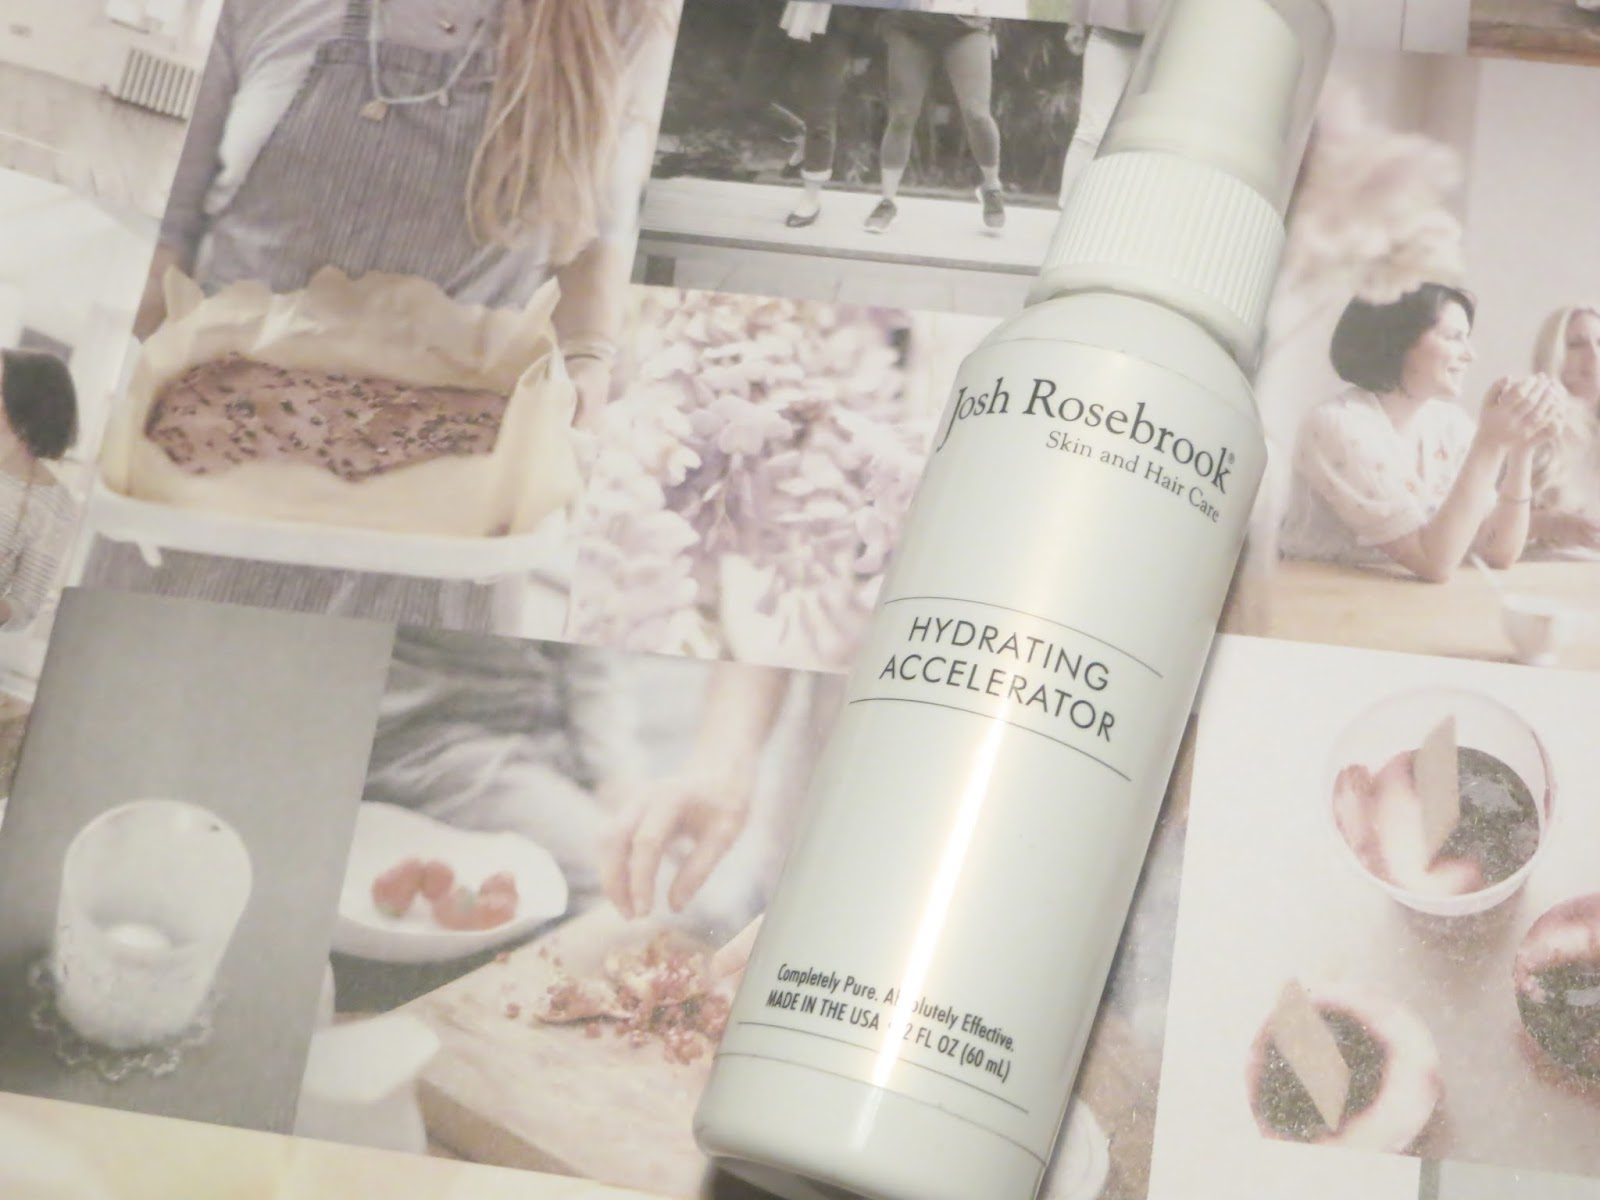 Josh Rosebrook Hydrating Accelerator Review